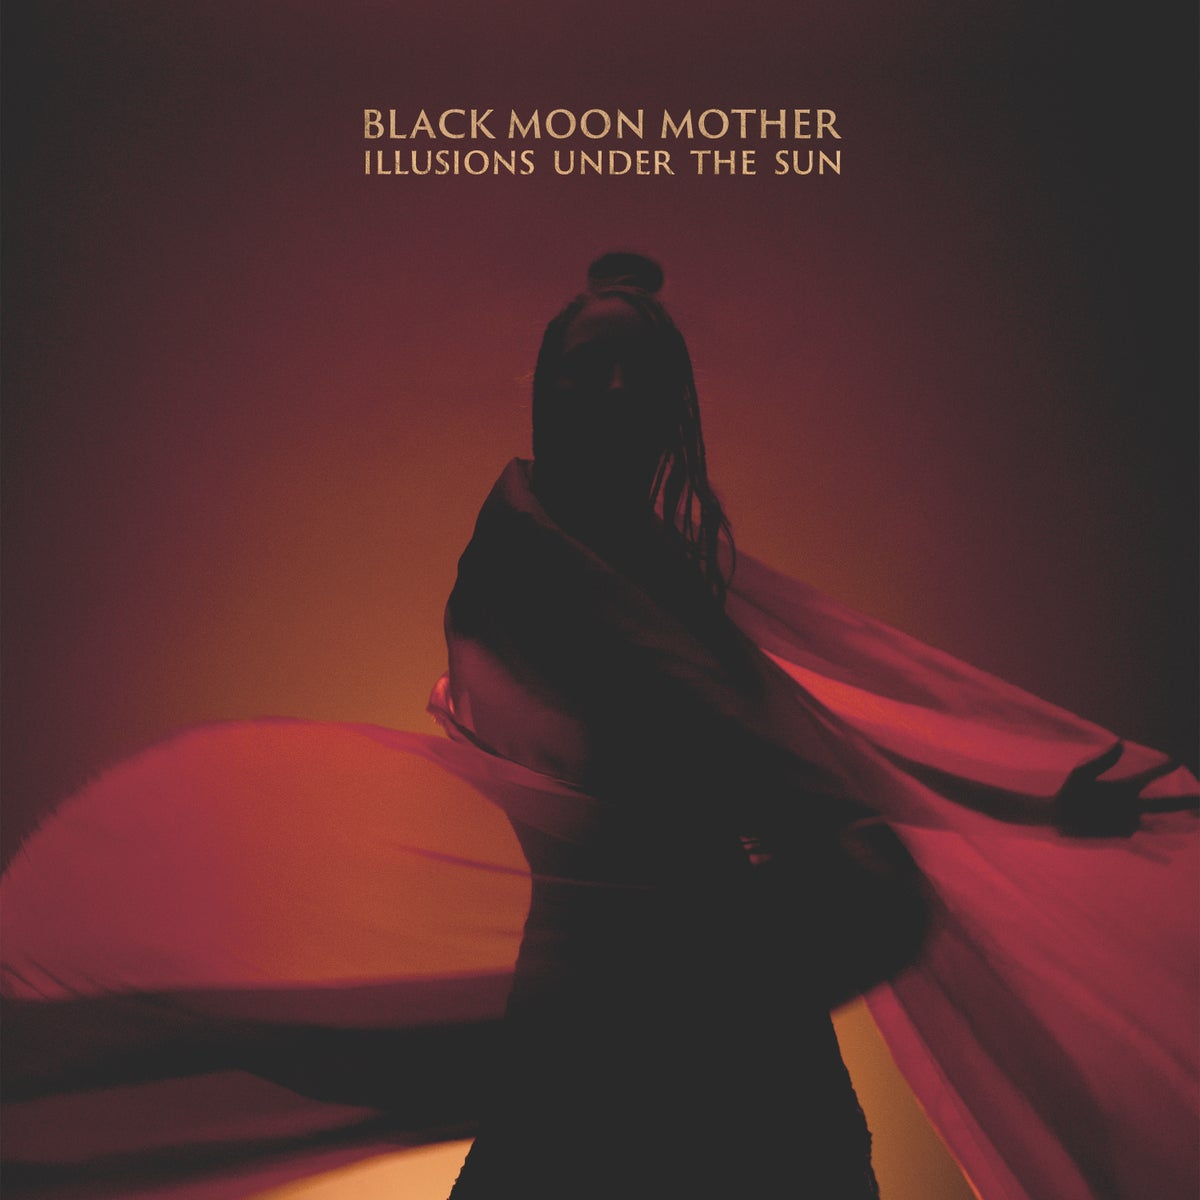 BLACK MOON MOTHER - ILLUSIONS UNDER THE SUN CD (LIMITED EDITION)